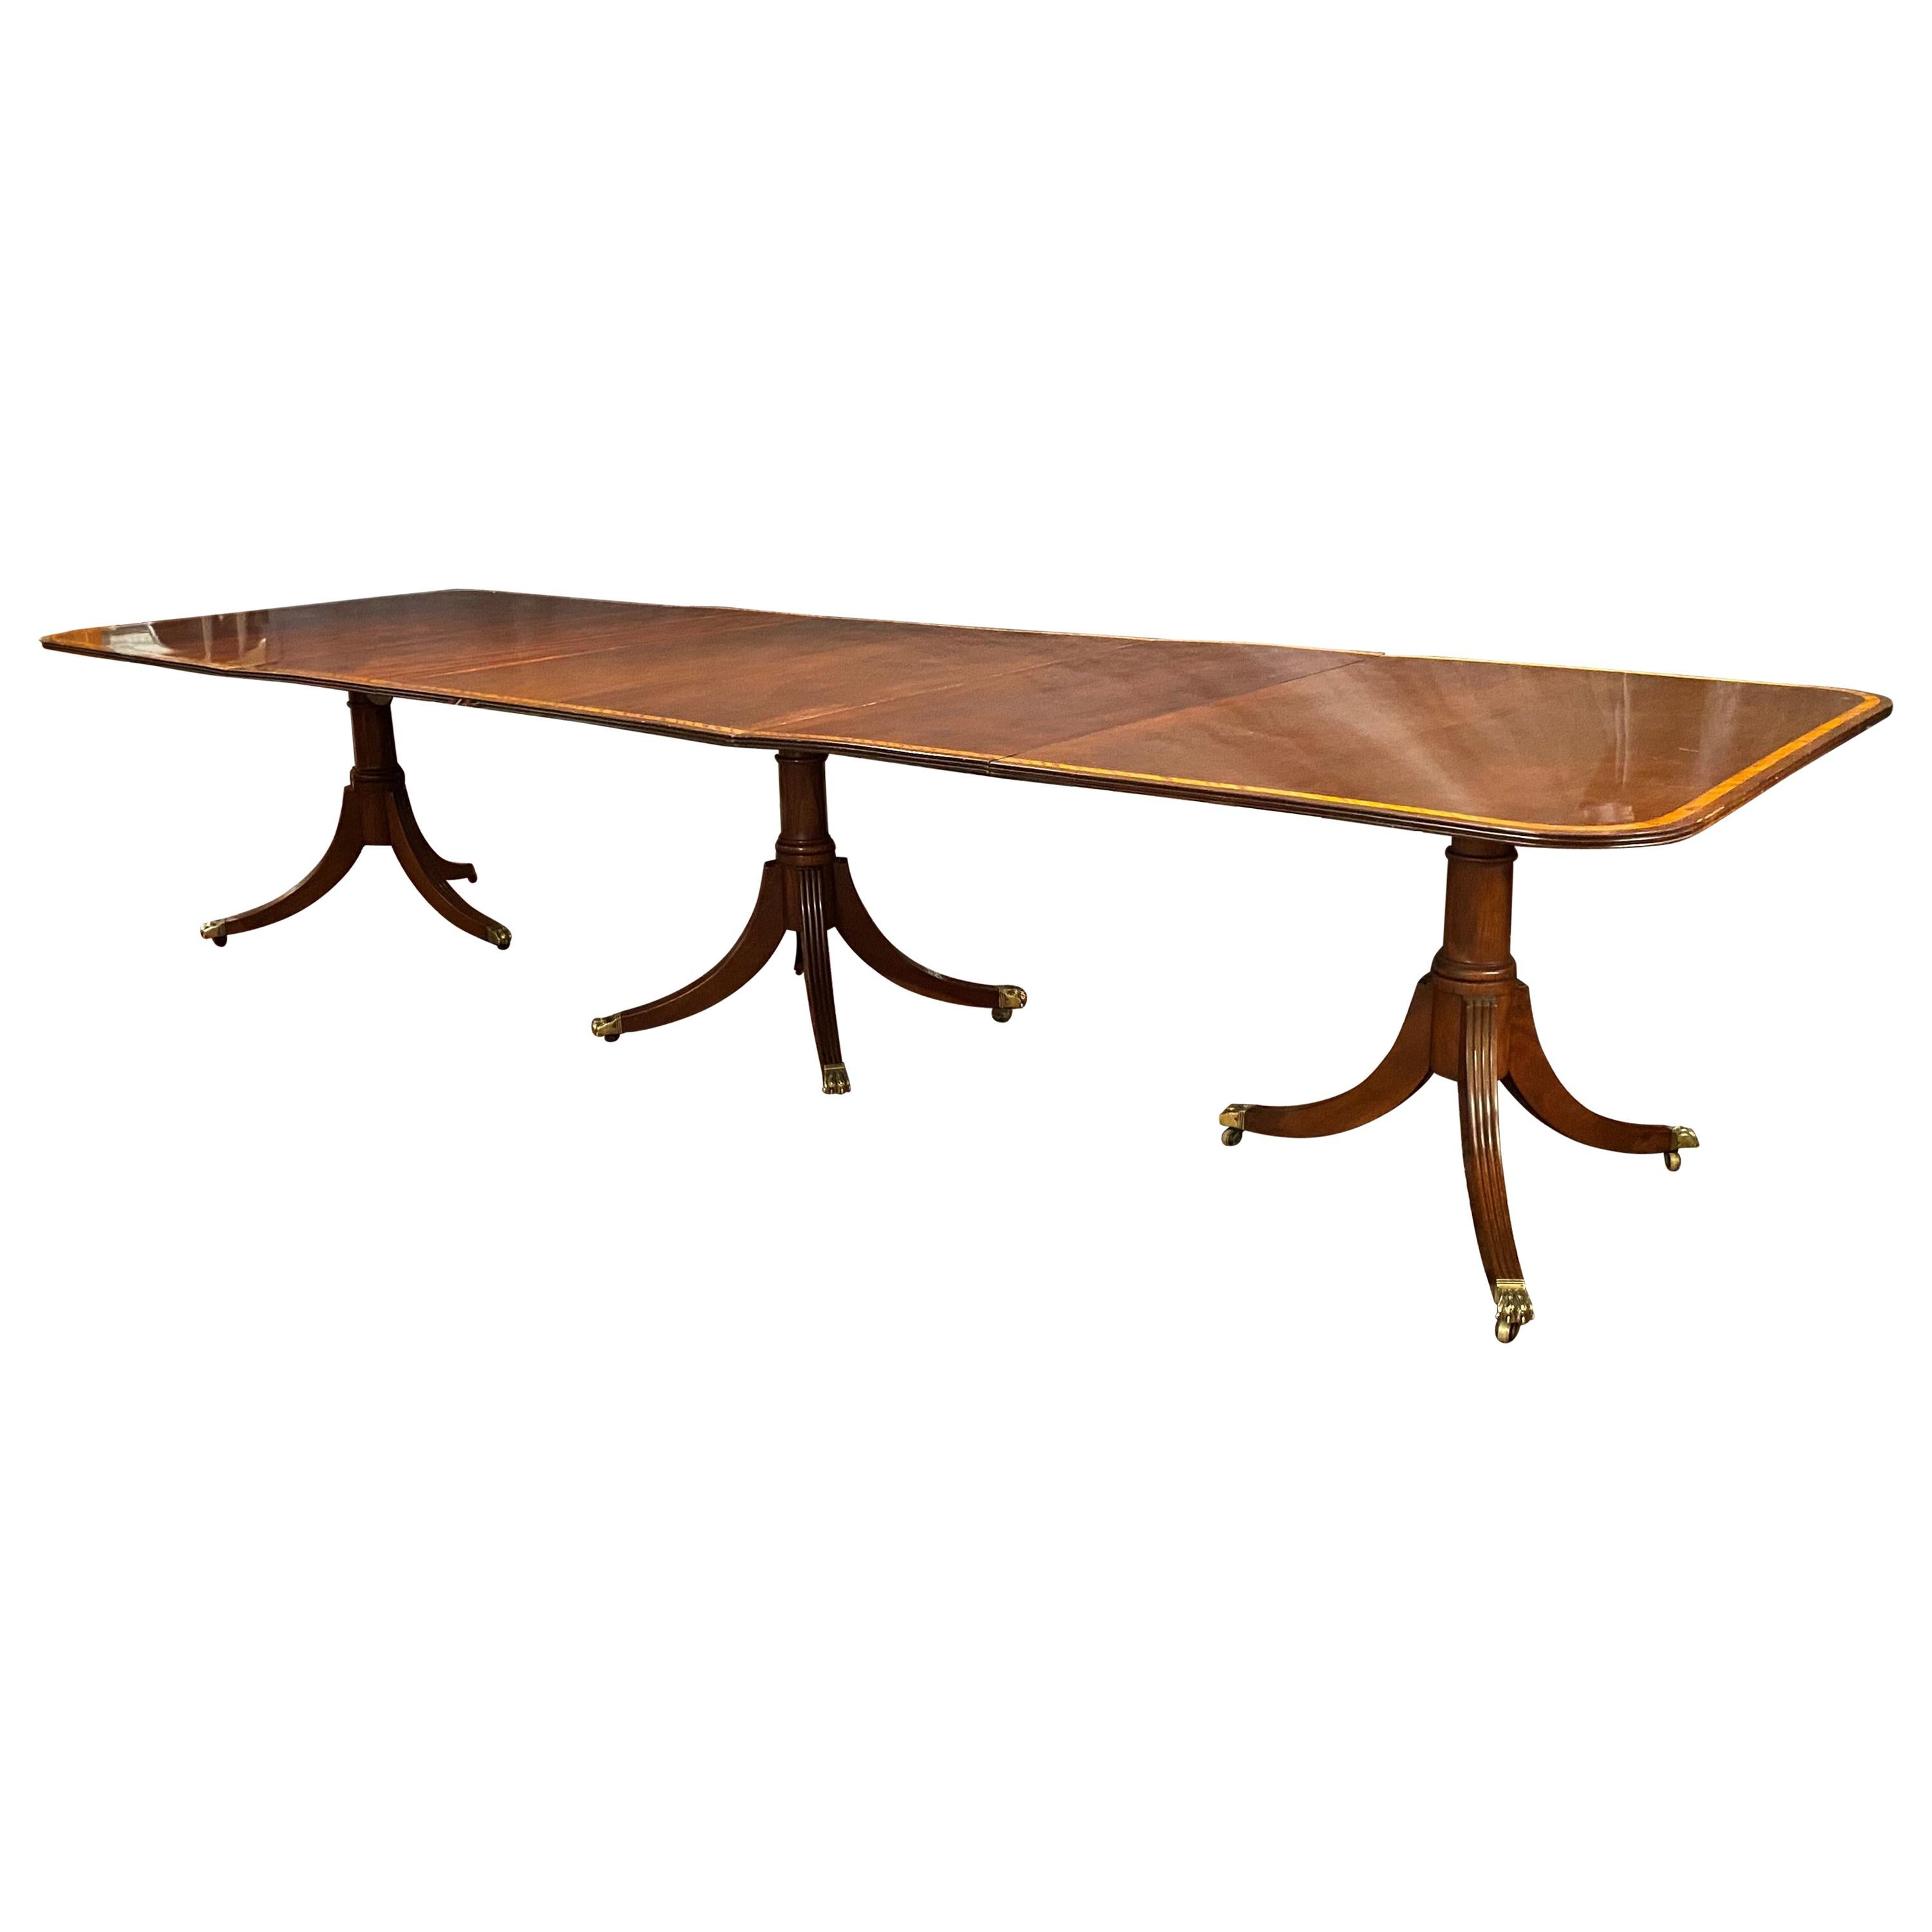 Georgian Style Mahogany Triple Pedestal Banded Dining Table with Two Leaves